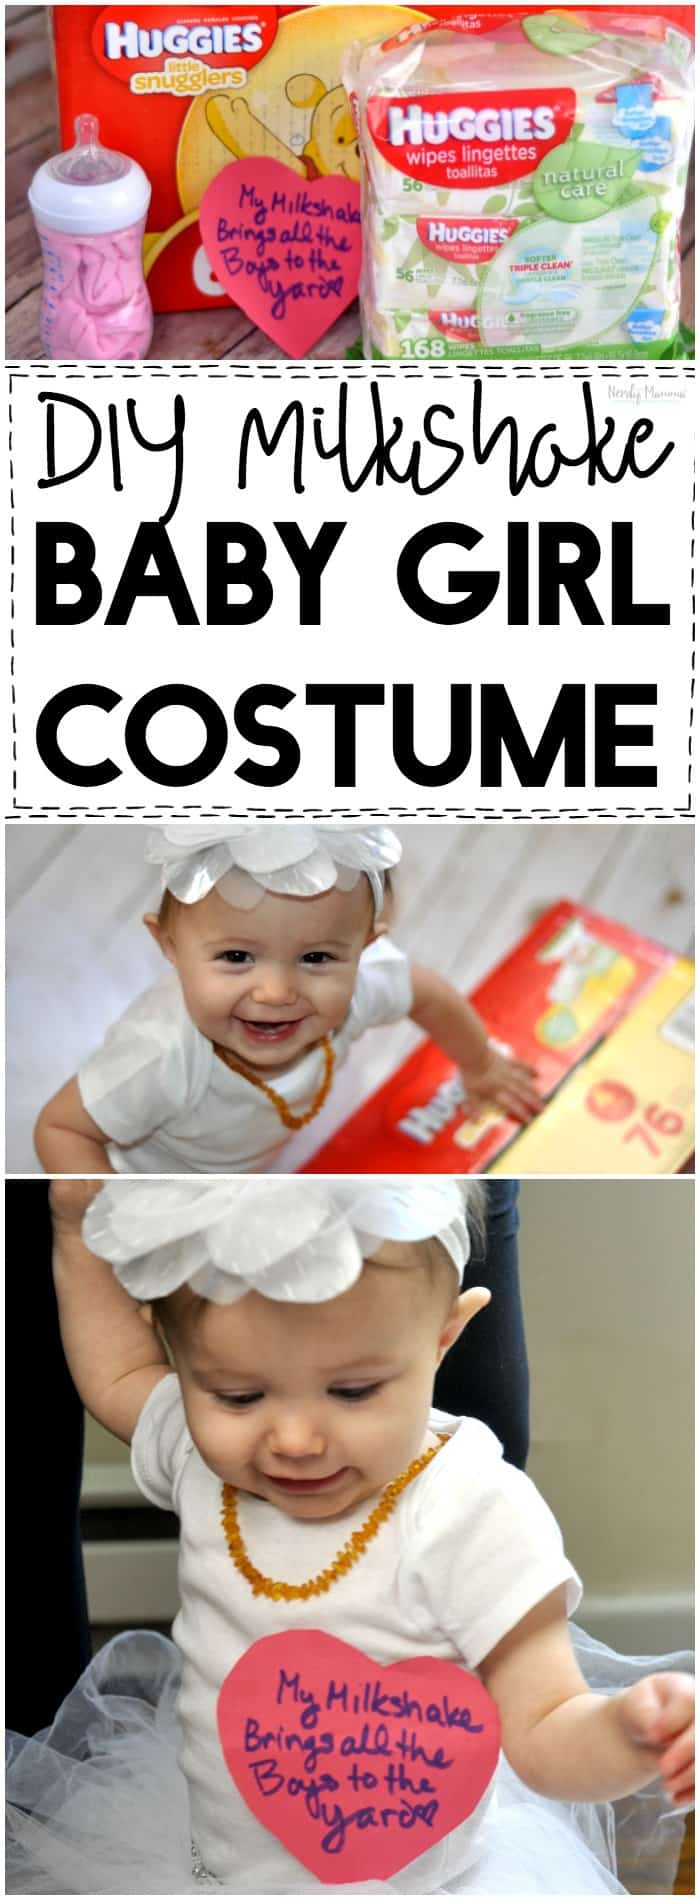 OMG! This DIY Milkshake baby girl costume is absolutely adorable!